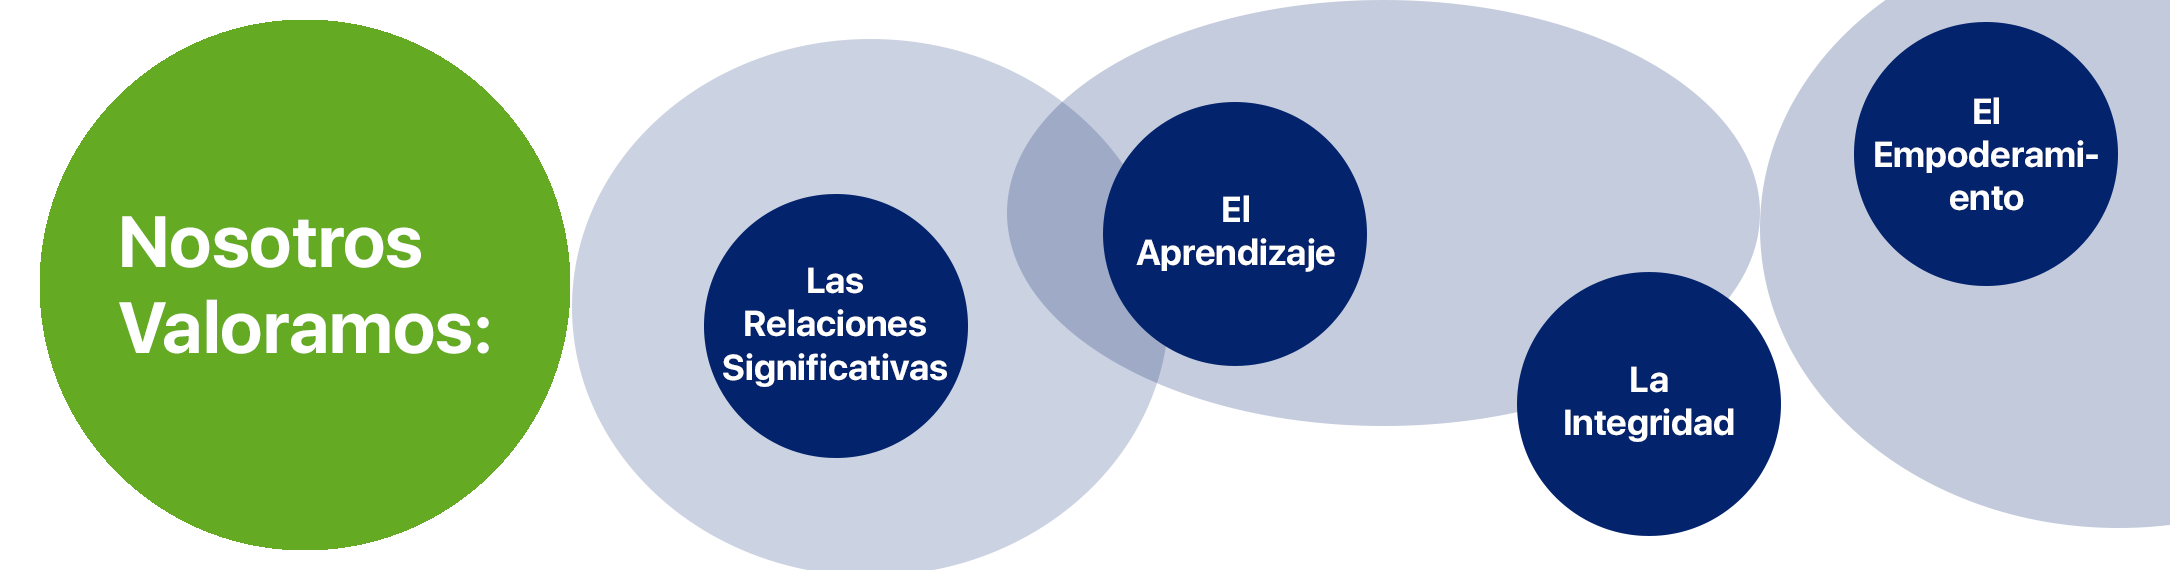 lontananza valores.png